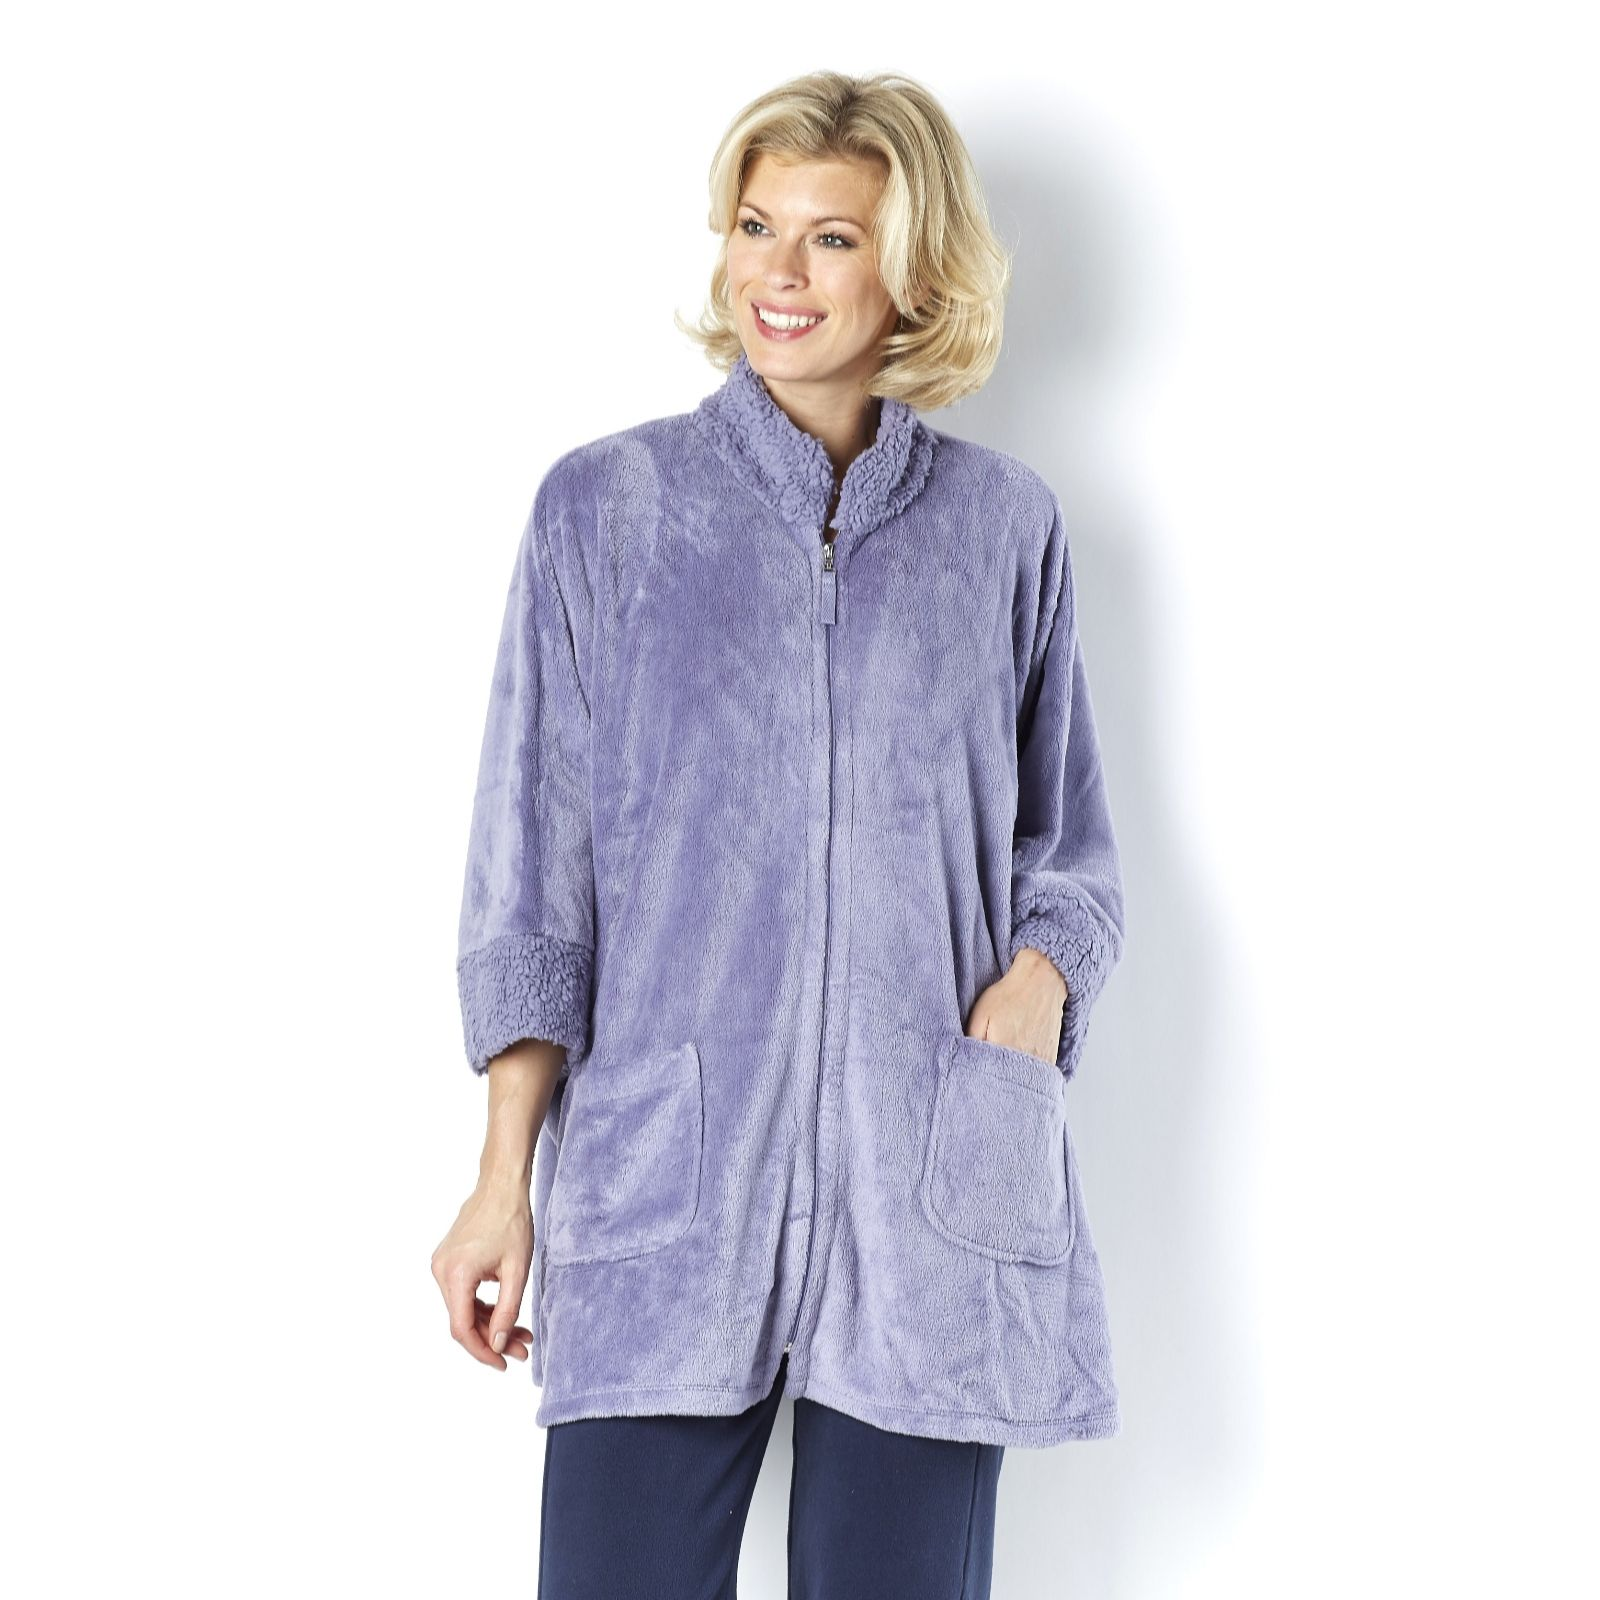 07078326cc6b9 Carole Hochman Cozy Zip Cape - Page 1 - QVC UK